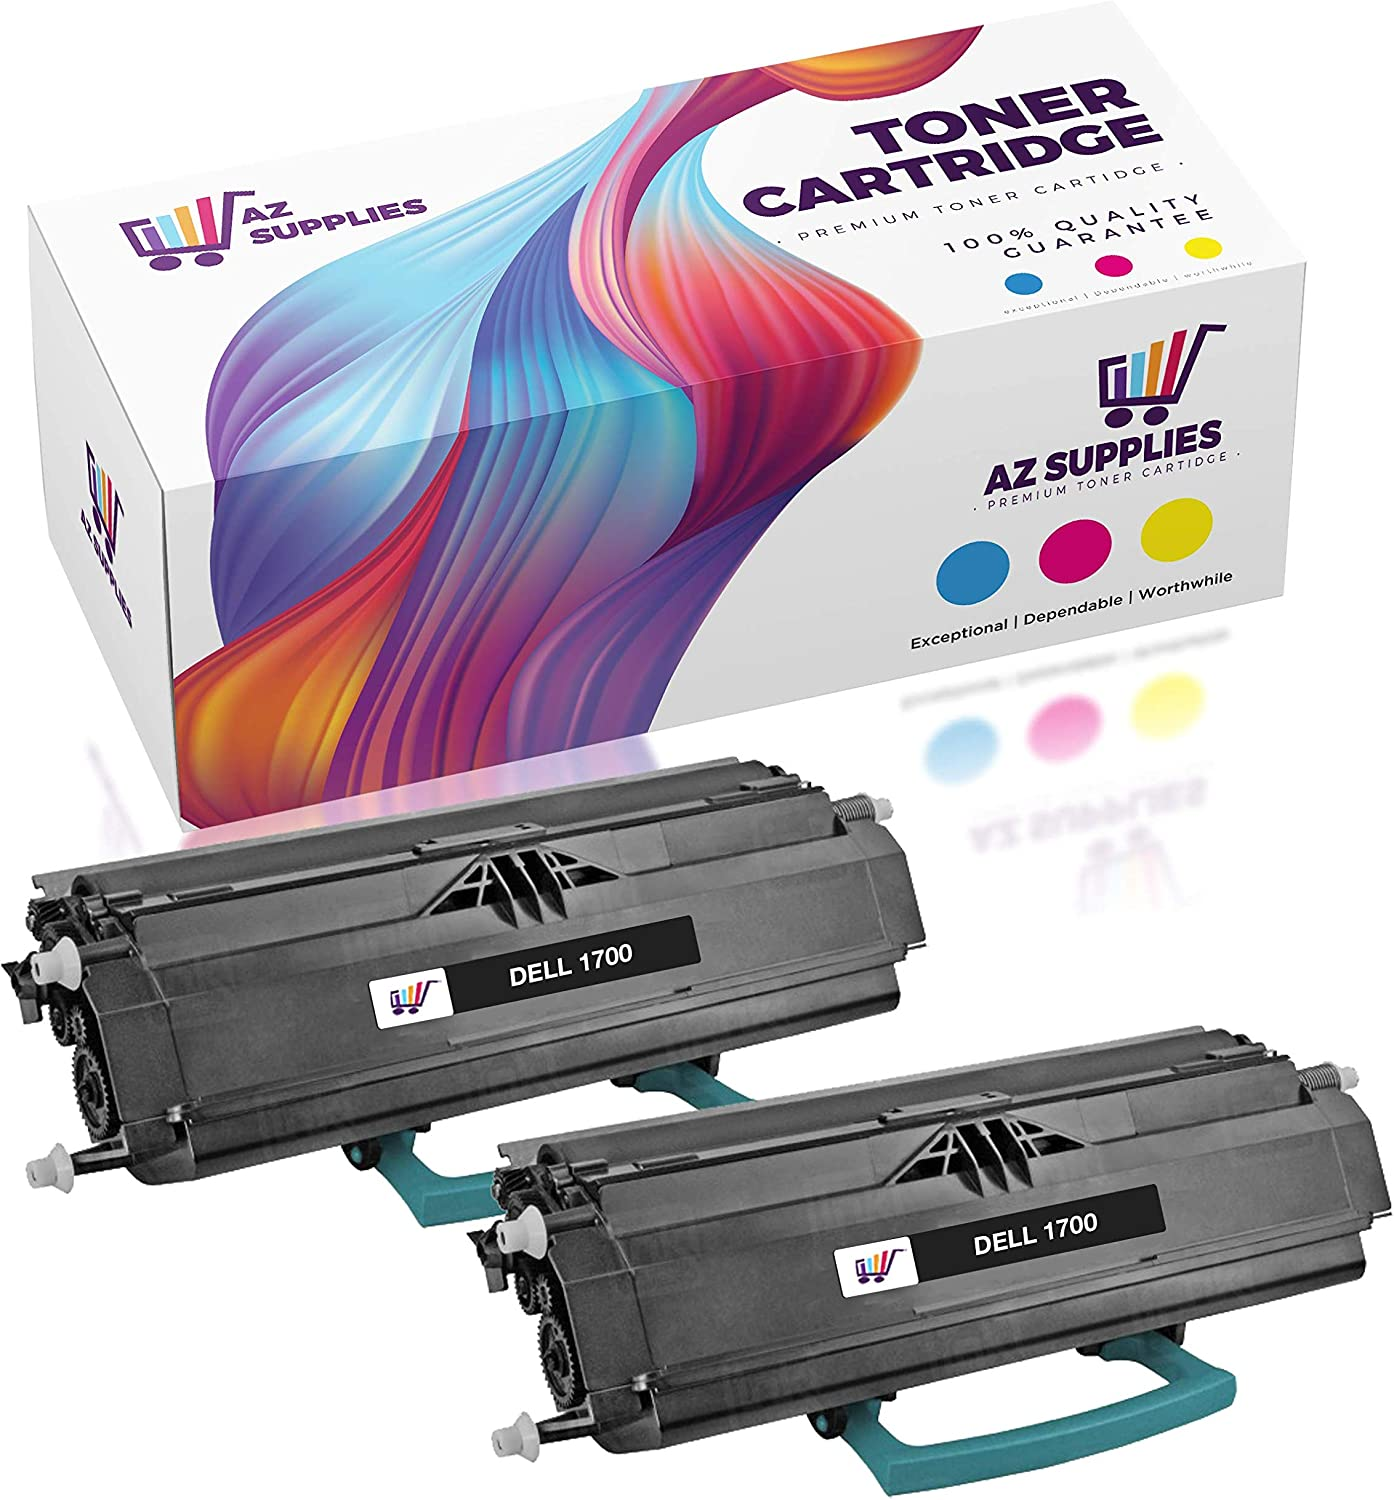 AZ Compatible Toner Cartridge Replacement for DELL 1700 / 1700N (1710 / 1700N) - 2 Pack Black